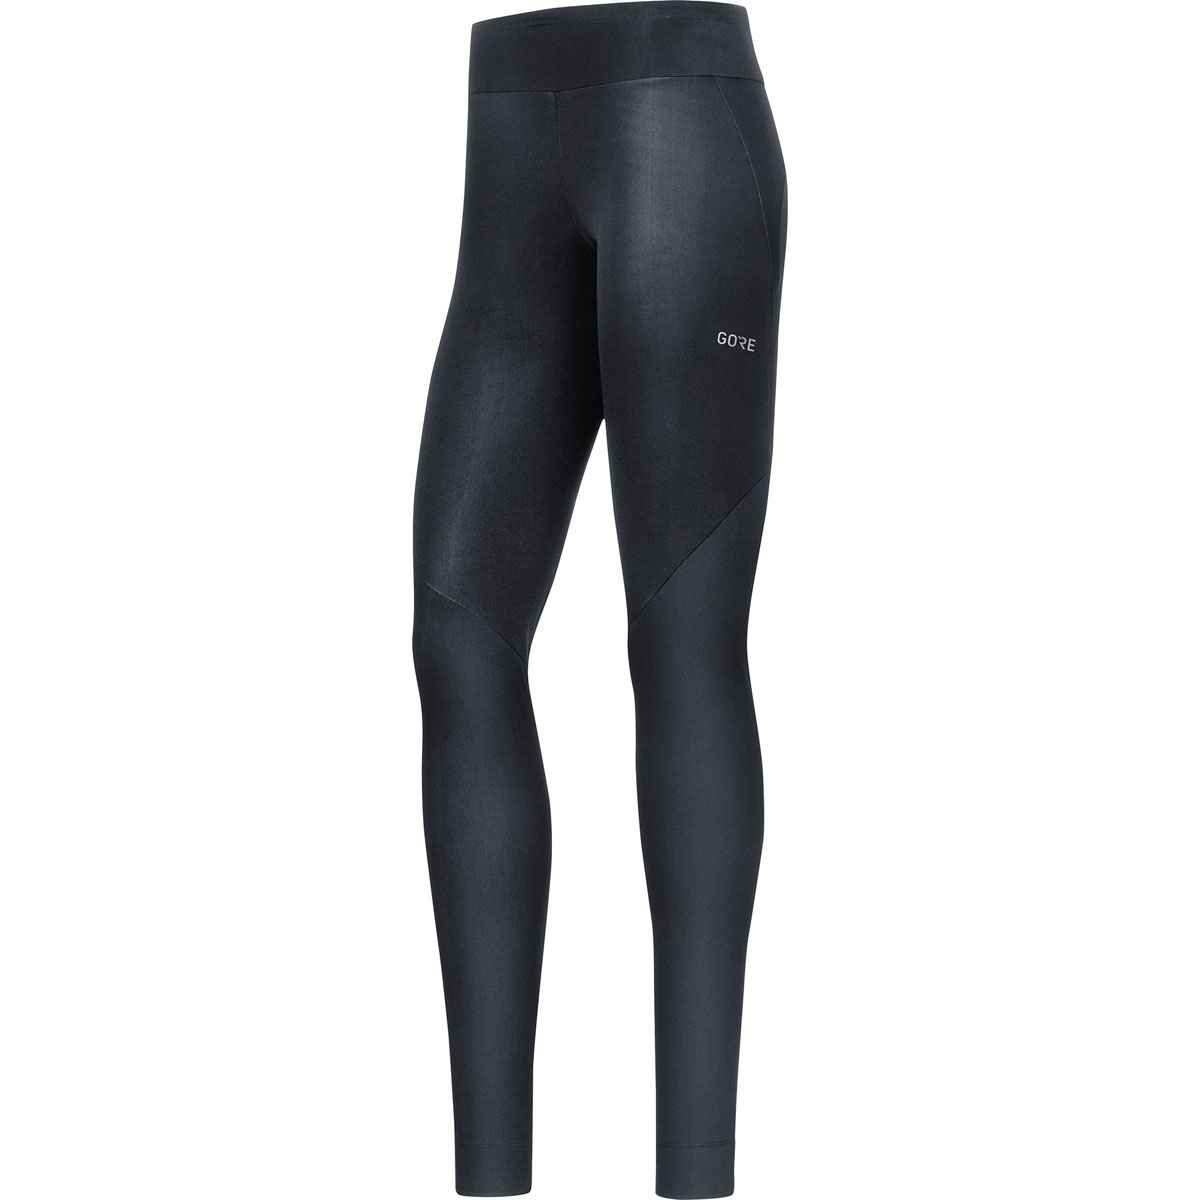 Gore Women's R3 Wmn Partial Gws Tights,  black,  S by GORE WEAR (Image #1)